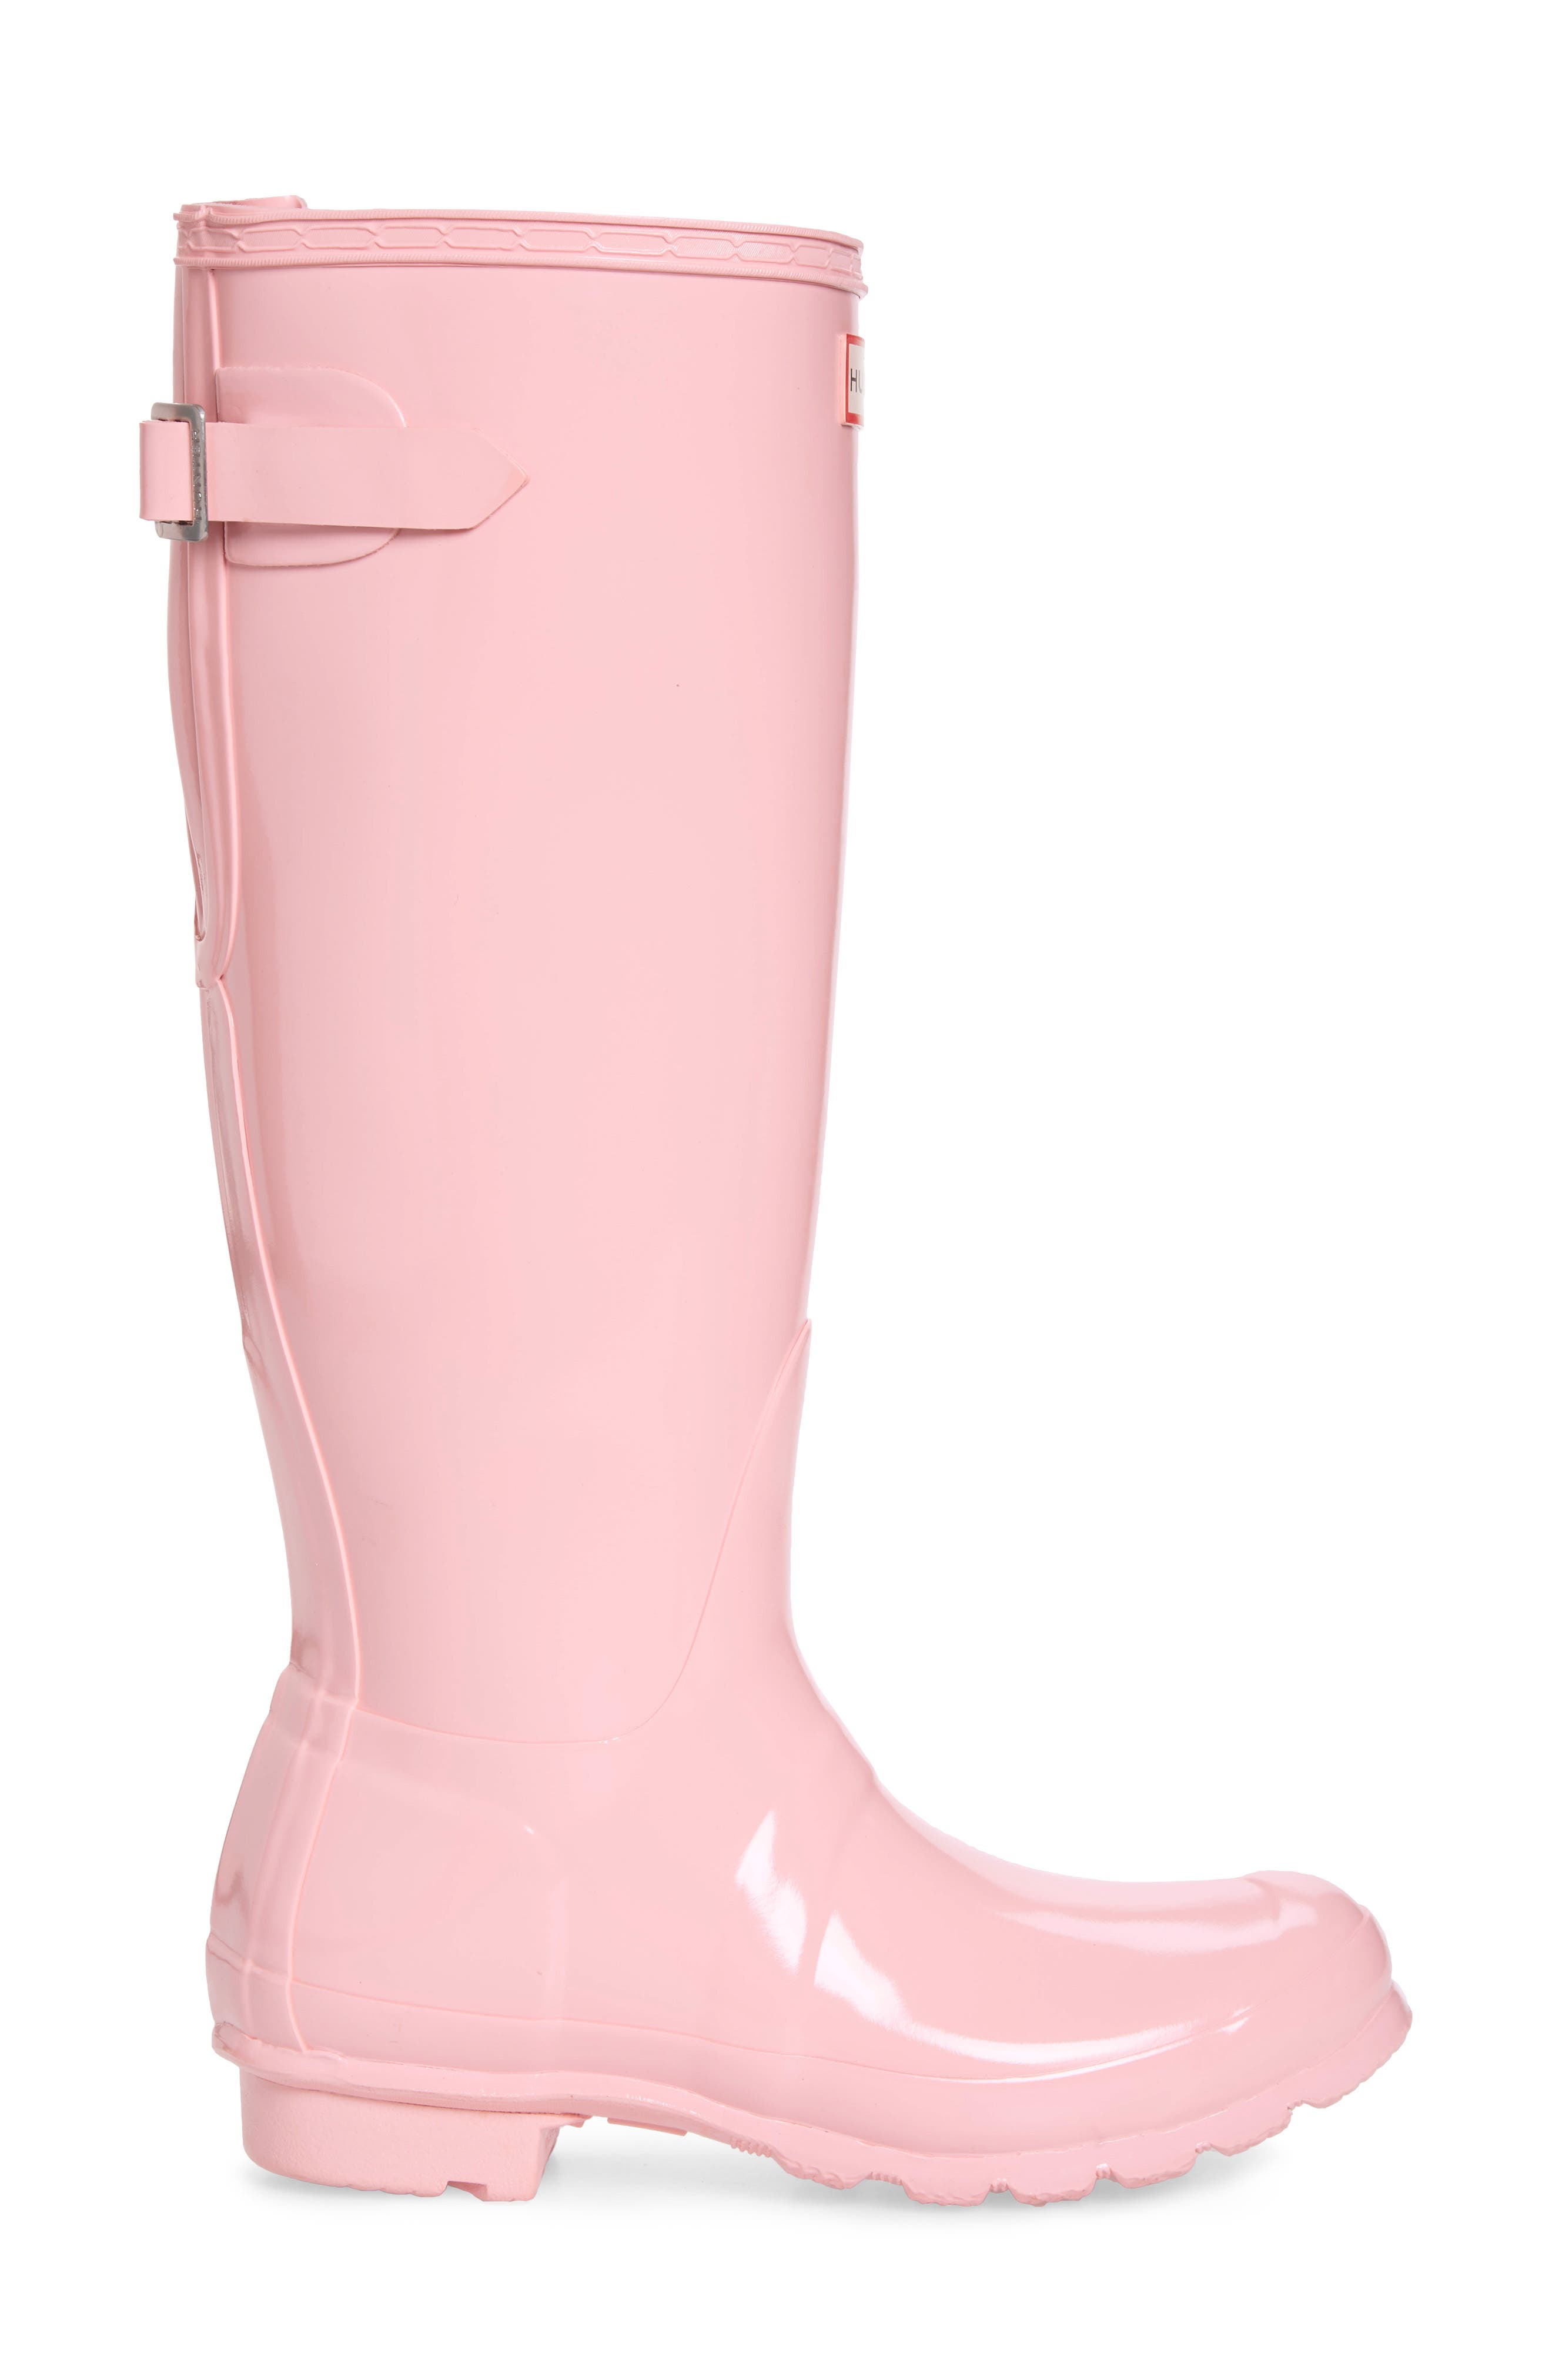 Adjustable Back Gloss Waterproof Rain Boot,                             Alternate thumbnail 3, color,                             CANDY FLOSS RUBBER